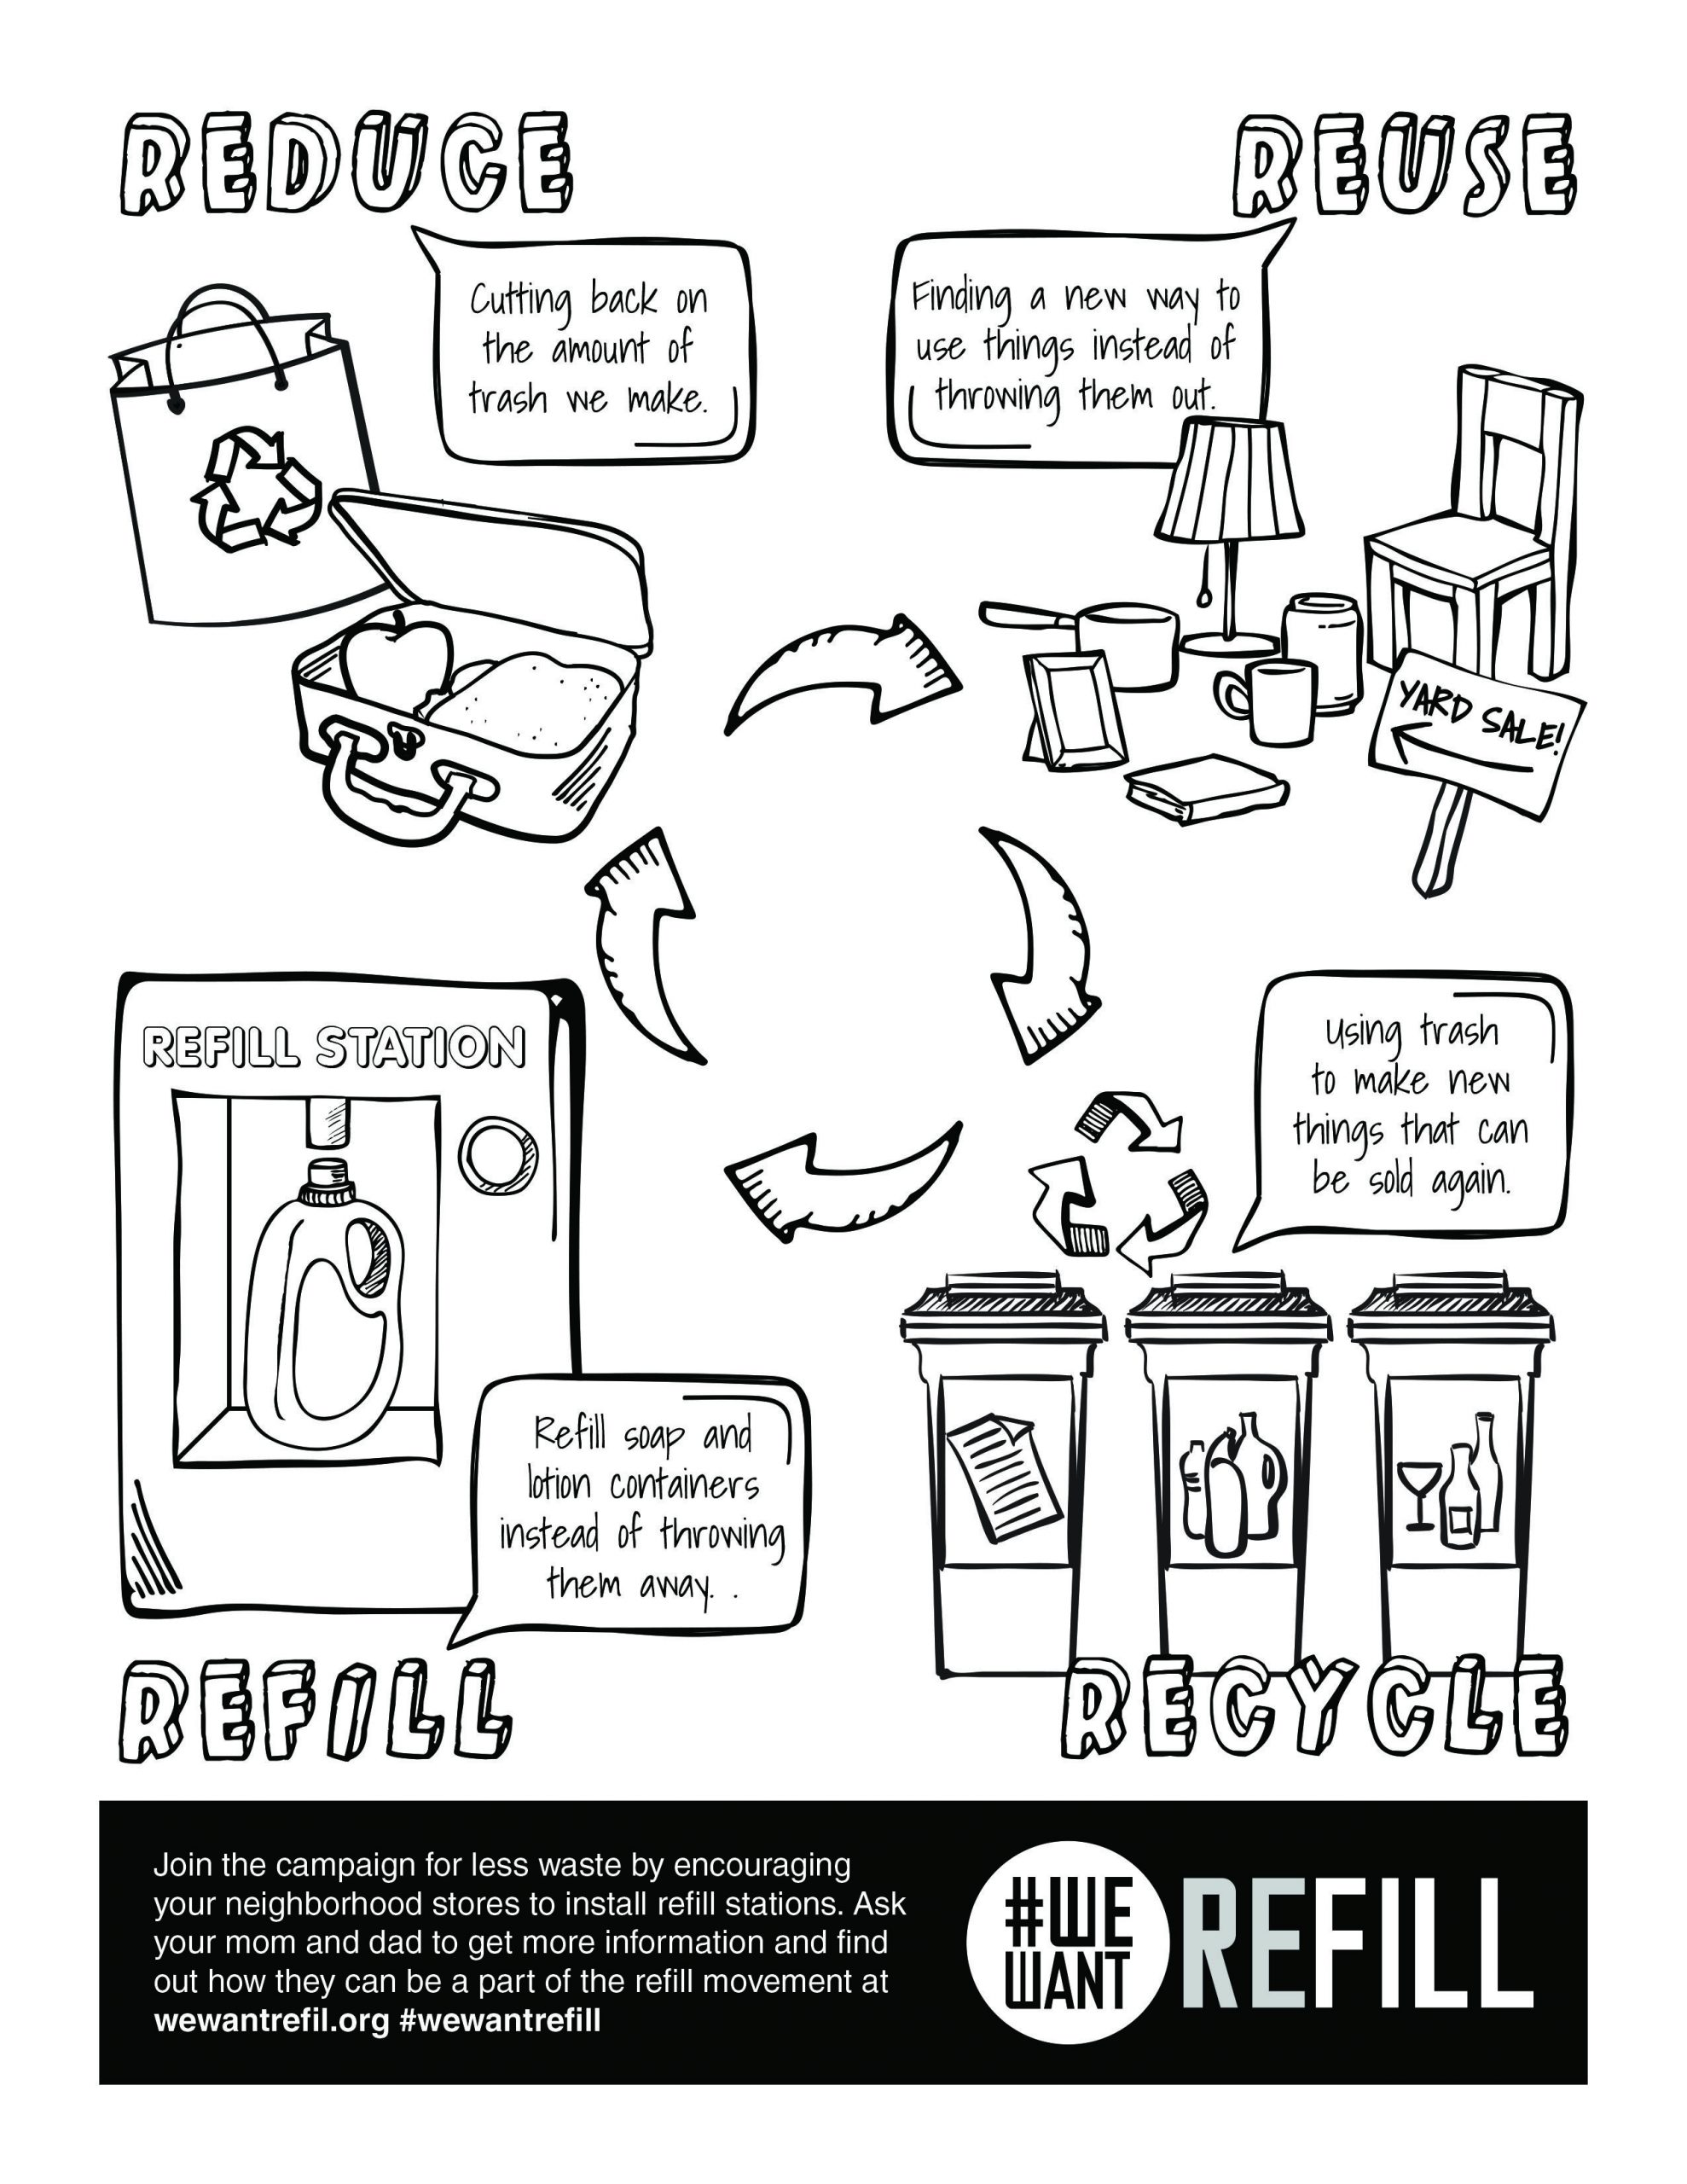 Recycling Worksheets for Preschoolers Free Downloadable Coloring Page for Kids We Want Refill